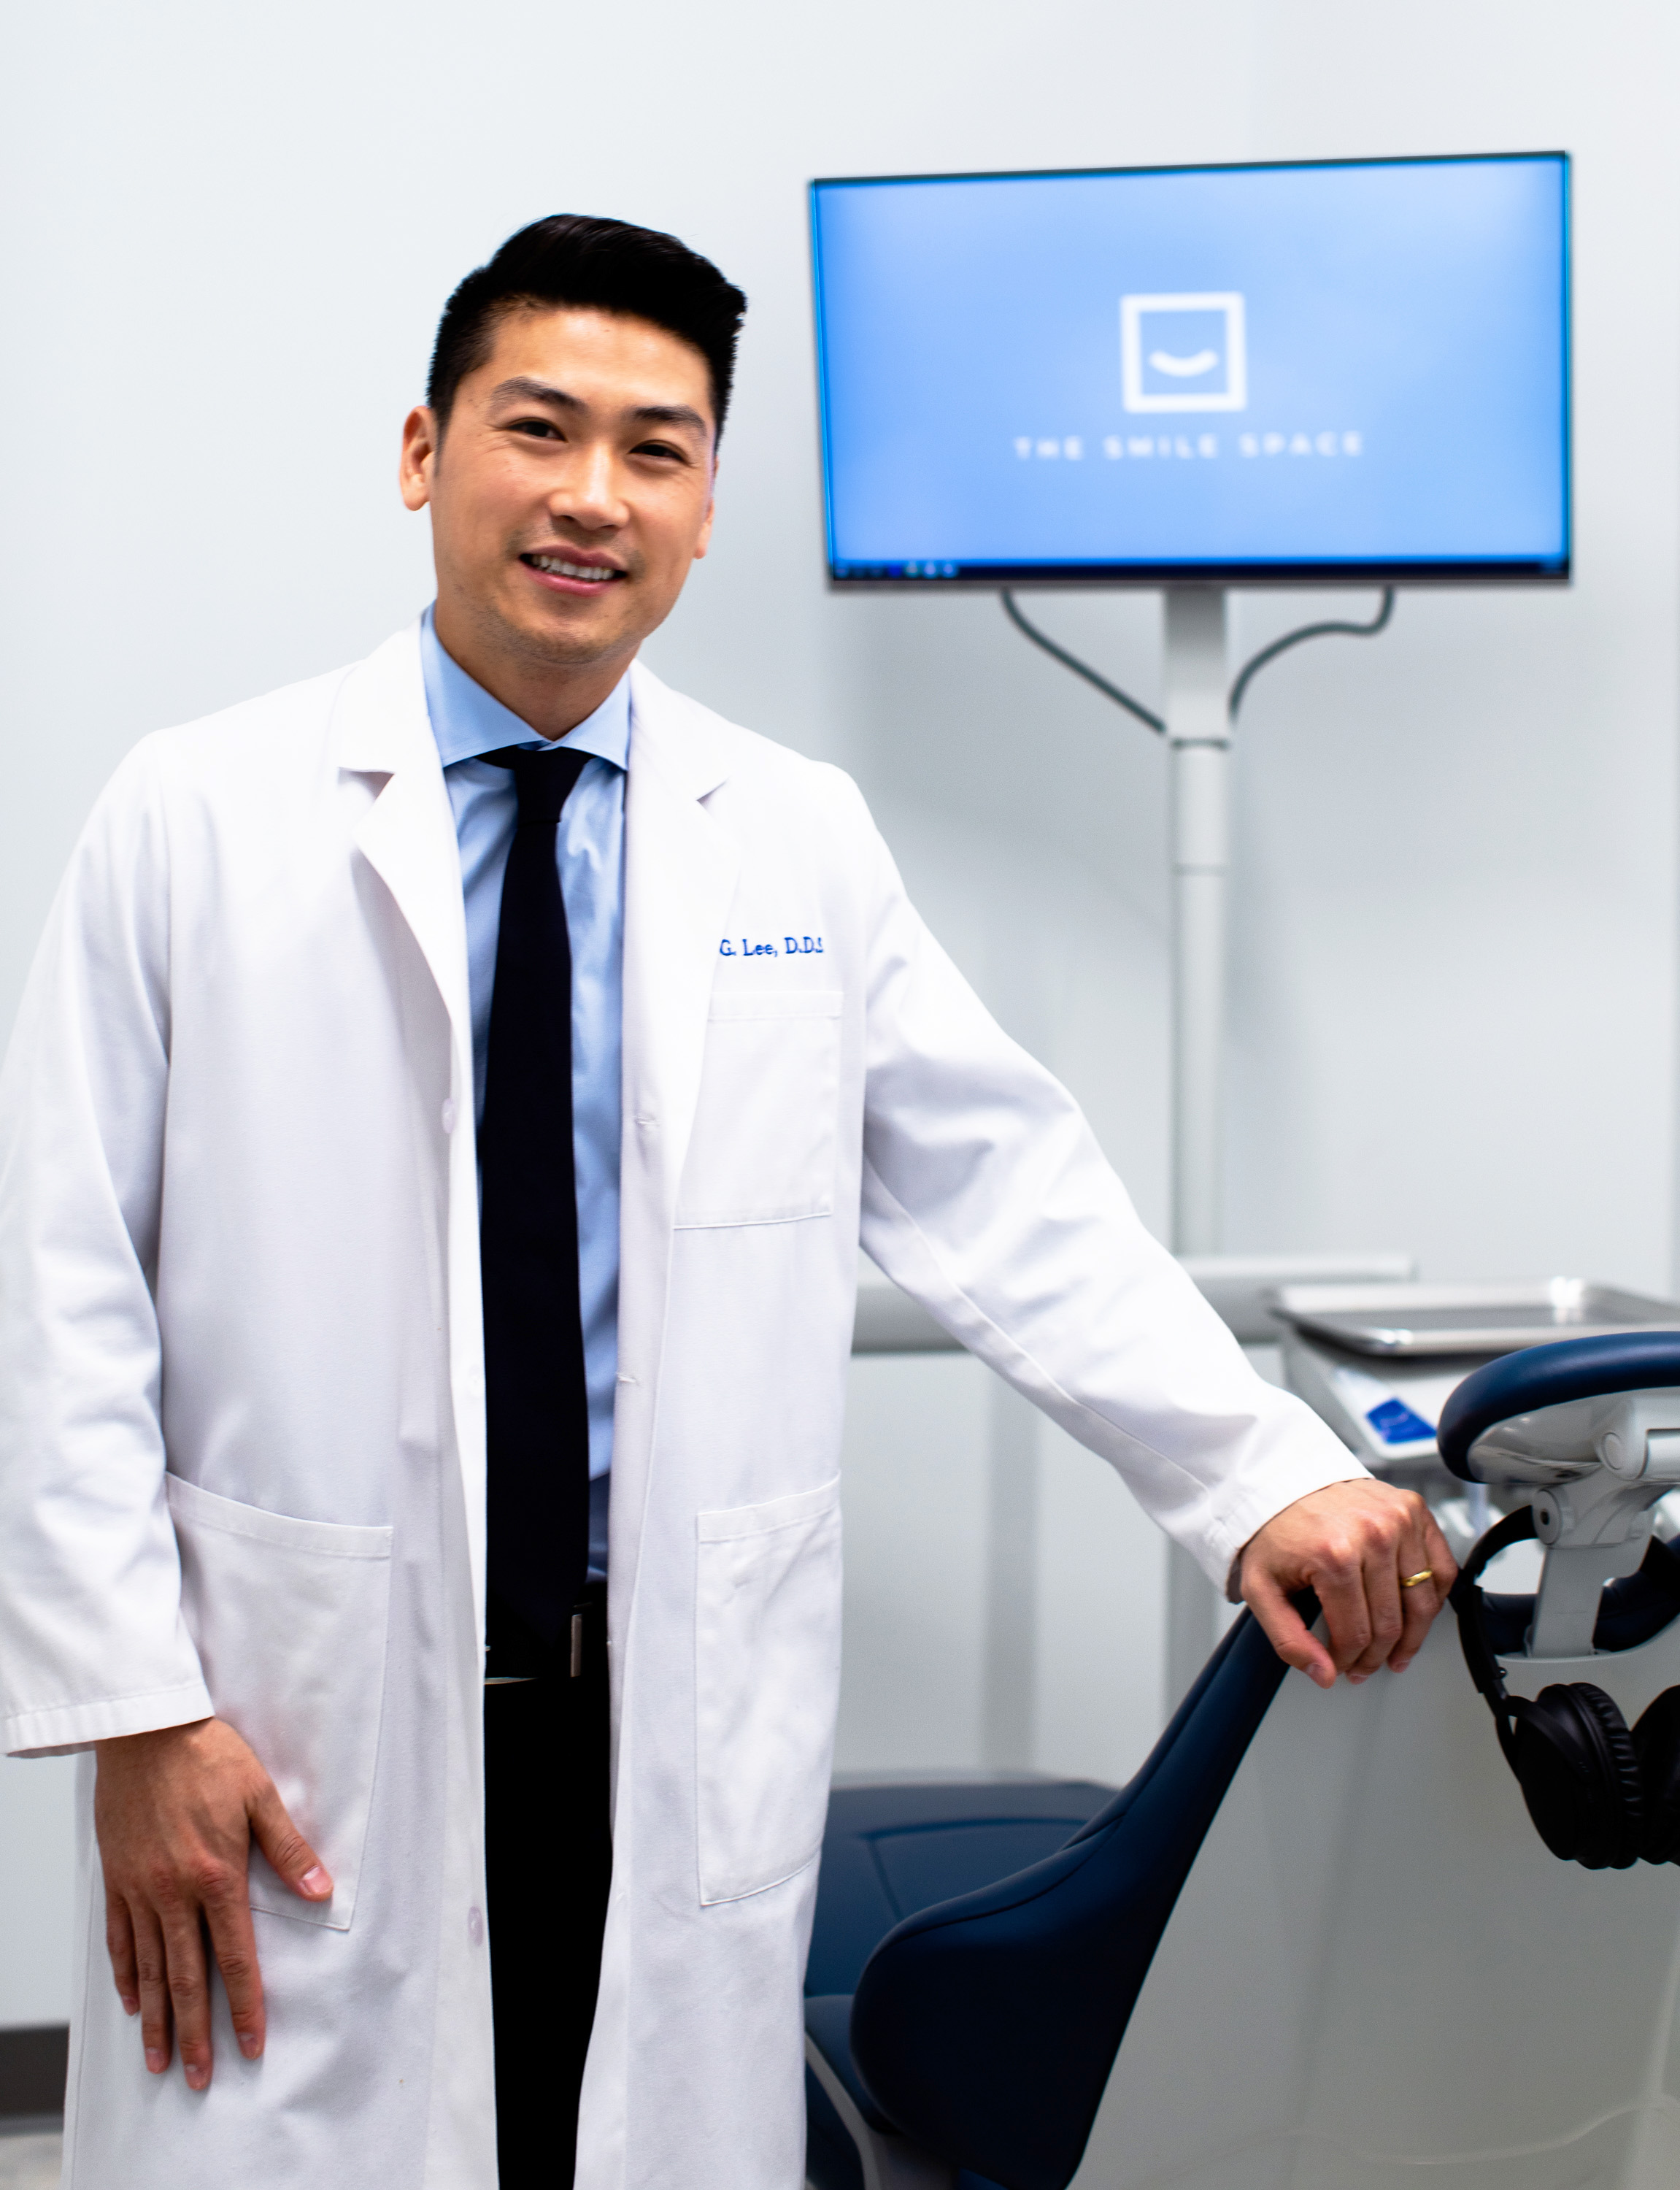 Hi! I'm Dr. Daniel Lee. - I am a Washington native and grew up in the small town of Steilacoom, WA. I attended the University of Washington where I earned a Bachelor of Science degree in Biology. I then went on to receive my Doctorate of Dental Surgery from New York University. Following graduation, I completed a hospital-based General Practice Residency program at Wyckoff Heights Medical Center in Brooklyn, NY, where I was able to further my training in dental implants, oral surgery, root canal therapy, pediatric dentistry, and sedation dentistry. For the past six years, I have been honing my skills as a family and cosmetic dentist in private practices in downtown Manhattan, NY, and more recently in downtown Seattle, WA.As a natural-born perfectionist, I am committed to delivering exceptional results and ensuring the longevity of my patients' oral health. My highest priority is making sure that the needs and comfort of my patients are always met, and my philosophy is to always treat my patients with the same care and compassion as I would for my own family members. I take pride in my ability to properly treat patients with dental phobia and anxiety by exhibiting a calm demeanor and gentle touch. I am a certified Invisalign® provider and routinely take Continuing Education courses in esthetic and reconstructive dentistry. I am also a member of the American Dental Association, Washington State Dental Association, Seattle-King County Dental Society, and Academy of General Dentistry.Since my job requires quite a bit of sitting, I like to stay active when I am not in the office. In my spare time, you can find me snowboarding, playing football, softball, or tennis, or hiking with my wife, Christina, and French bulldog, Muggsy.Book a dental appointment with Dr. Daniel Lee ➝Back to the top ➝